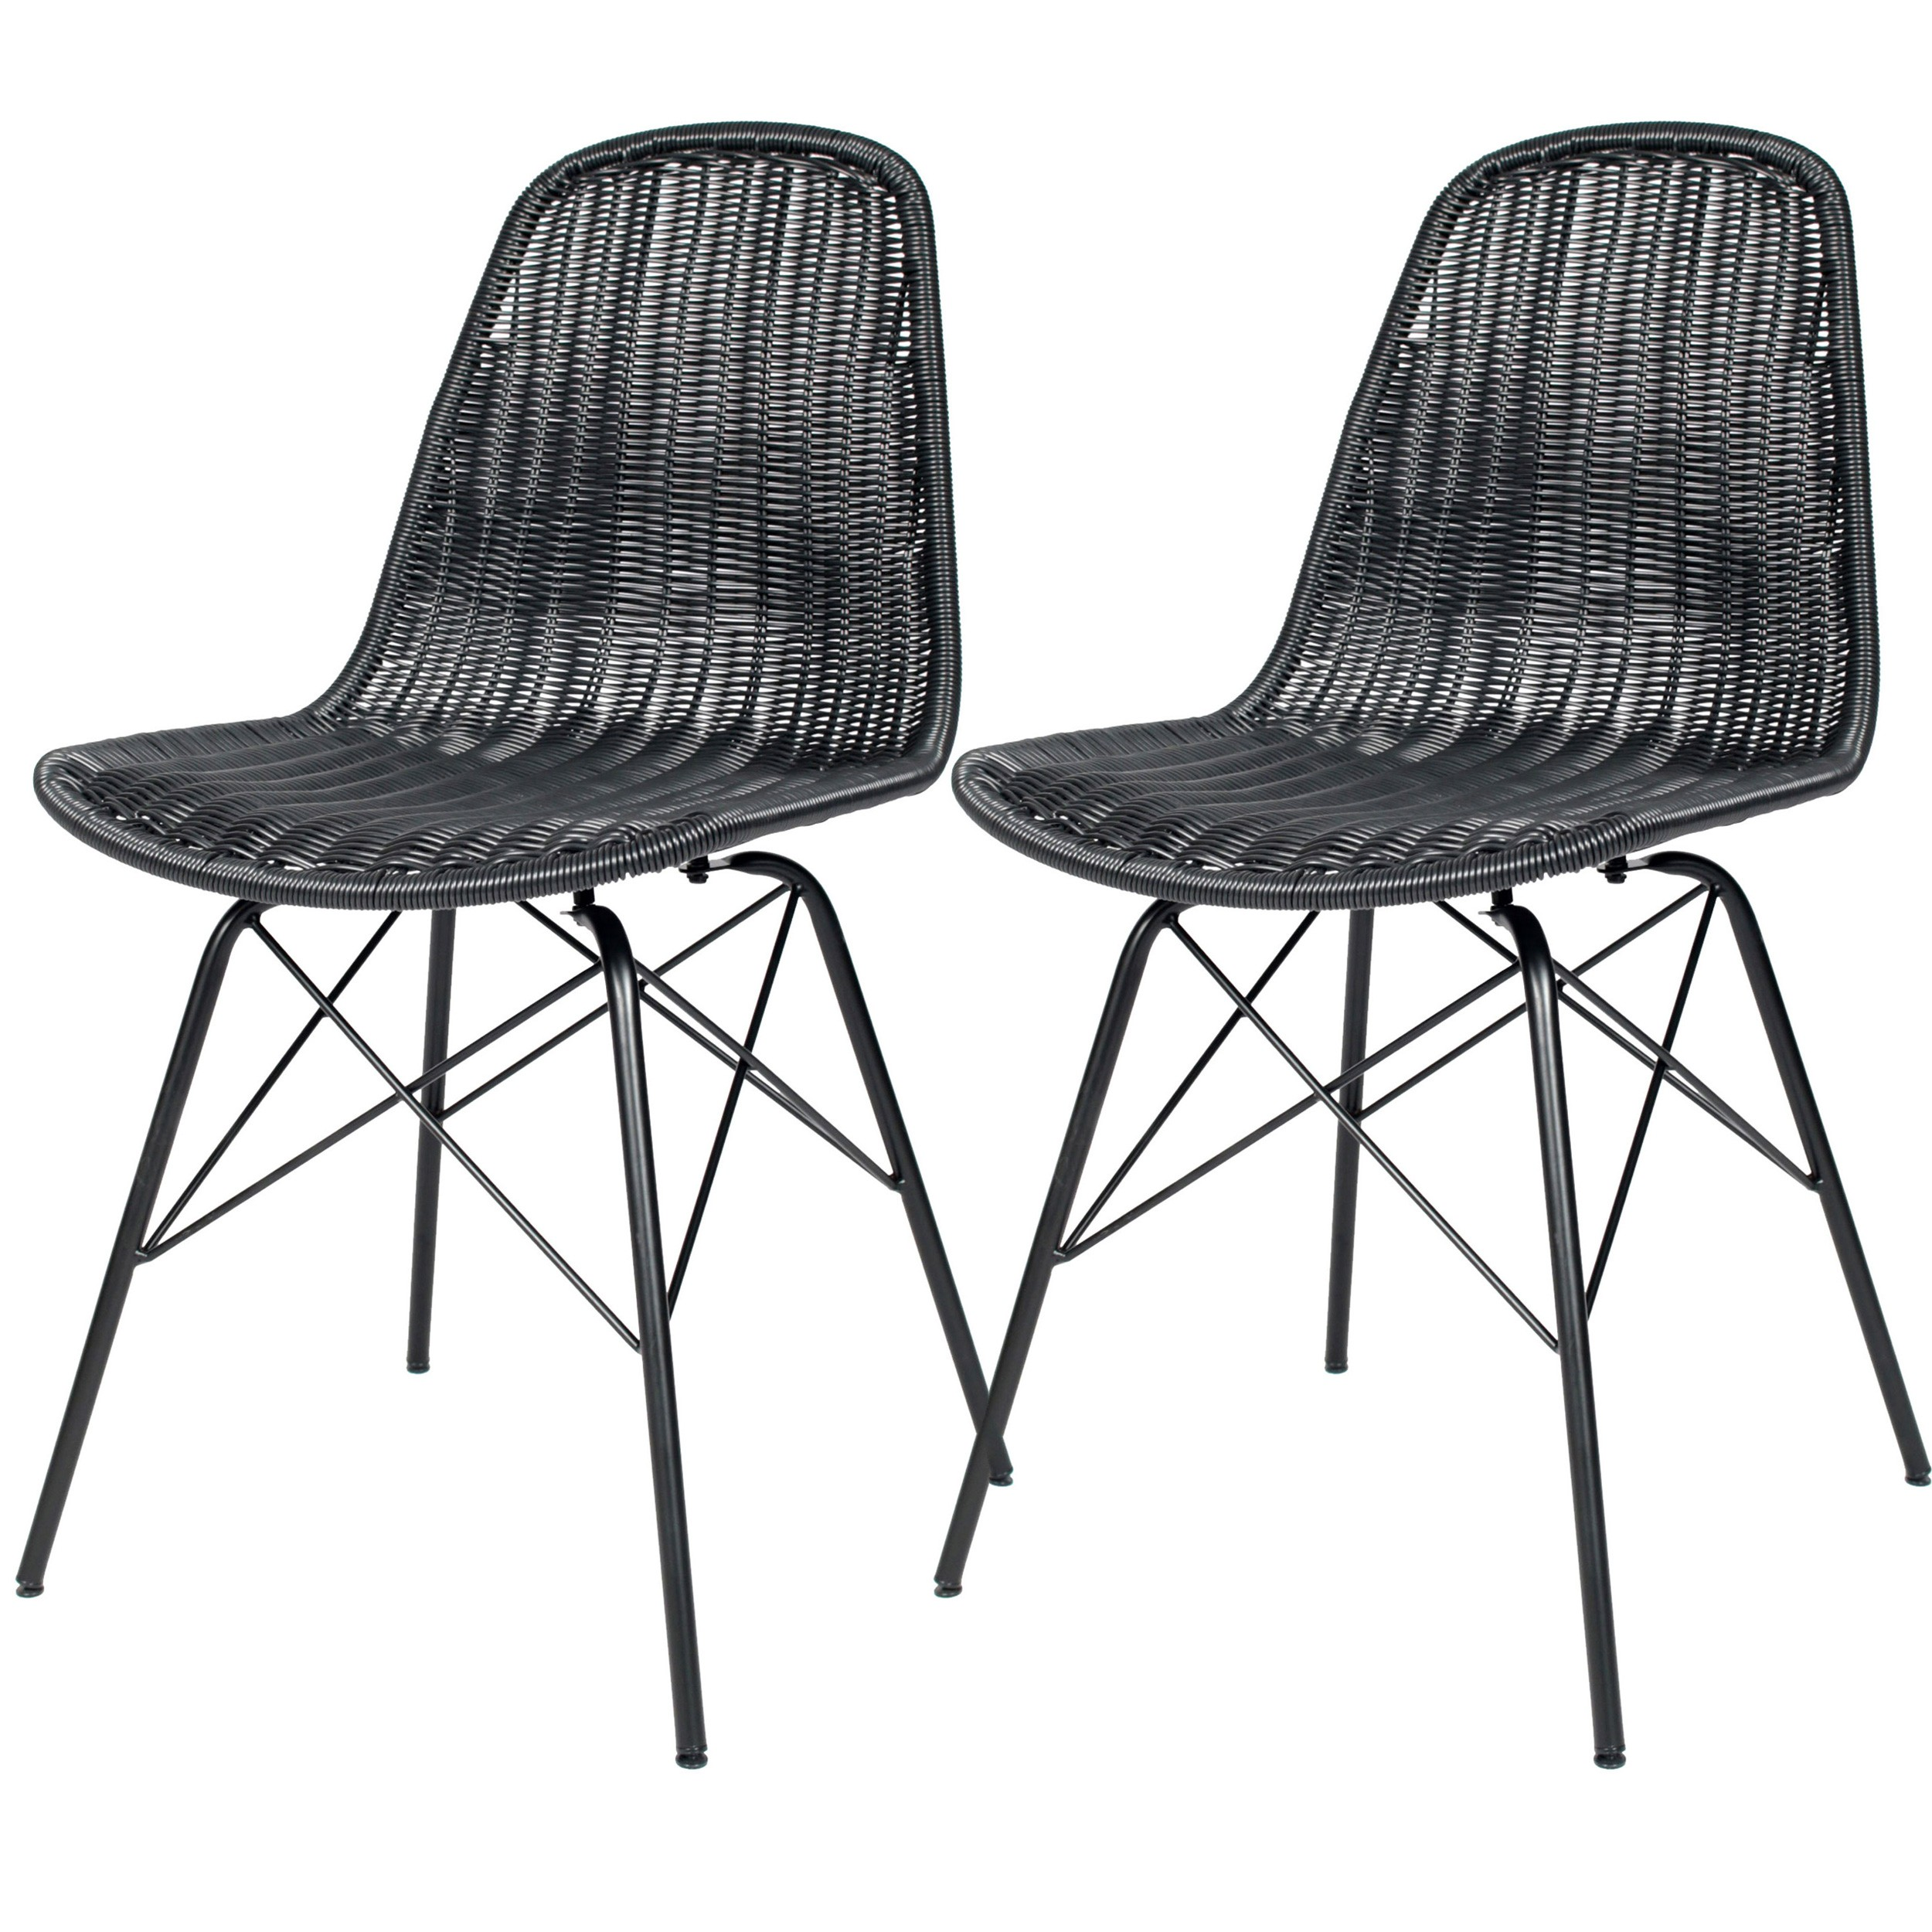 Chaise tiptur en r sine tress e noire lot de 2 for Acheter chaise design